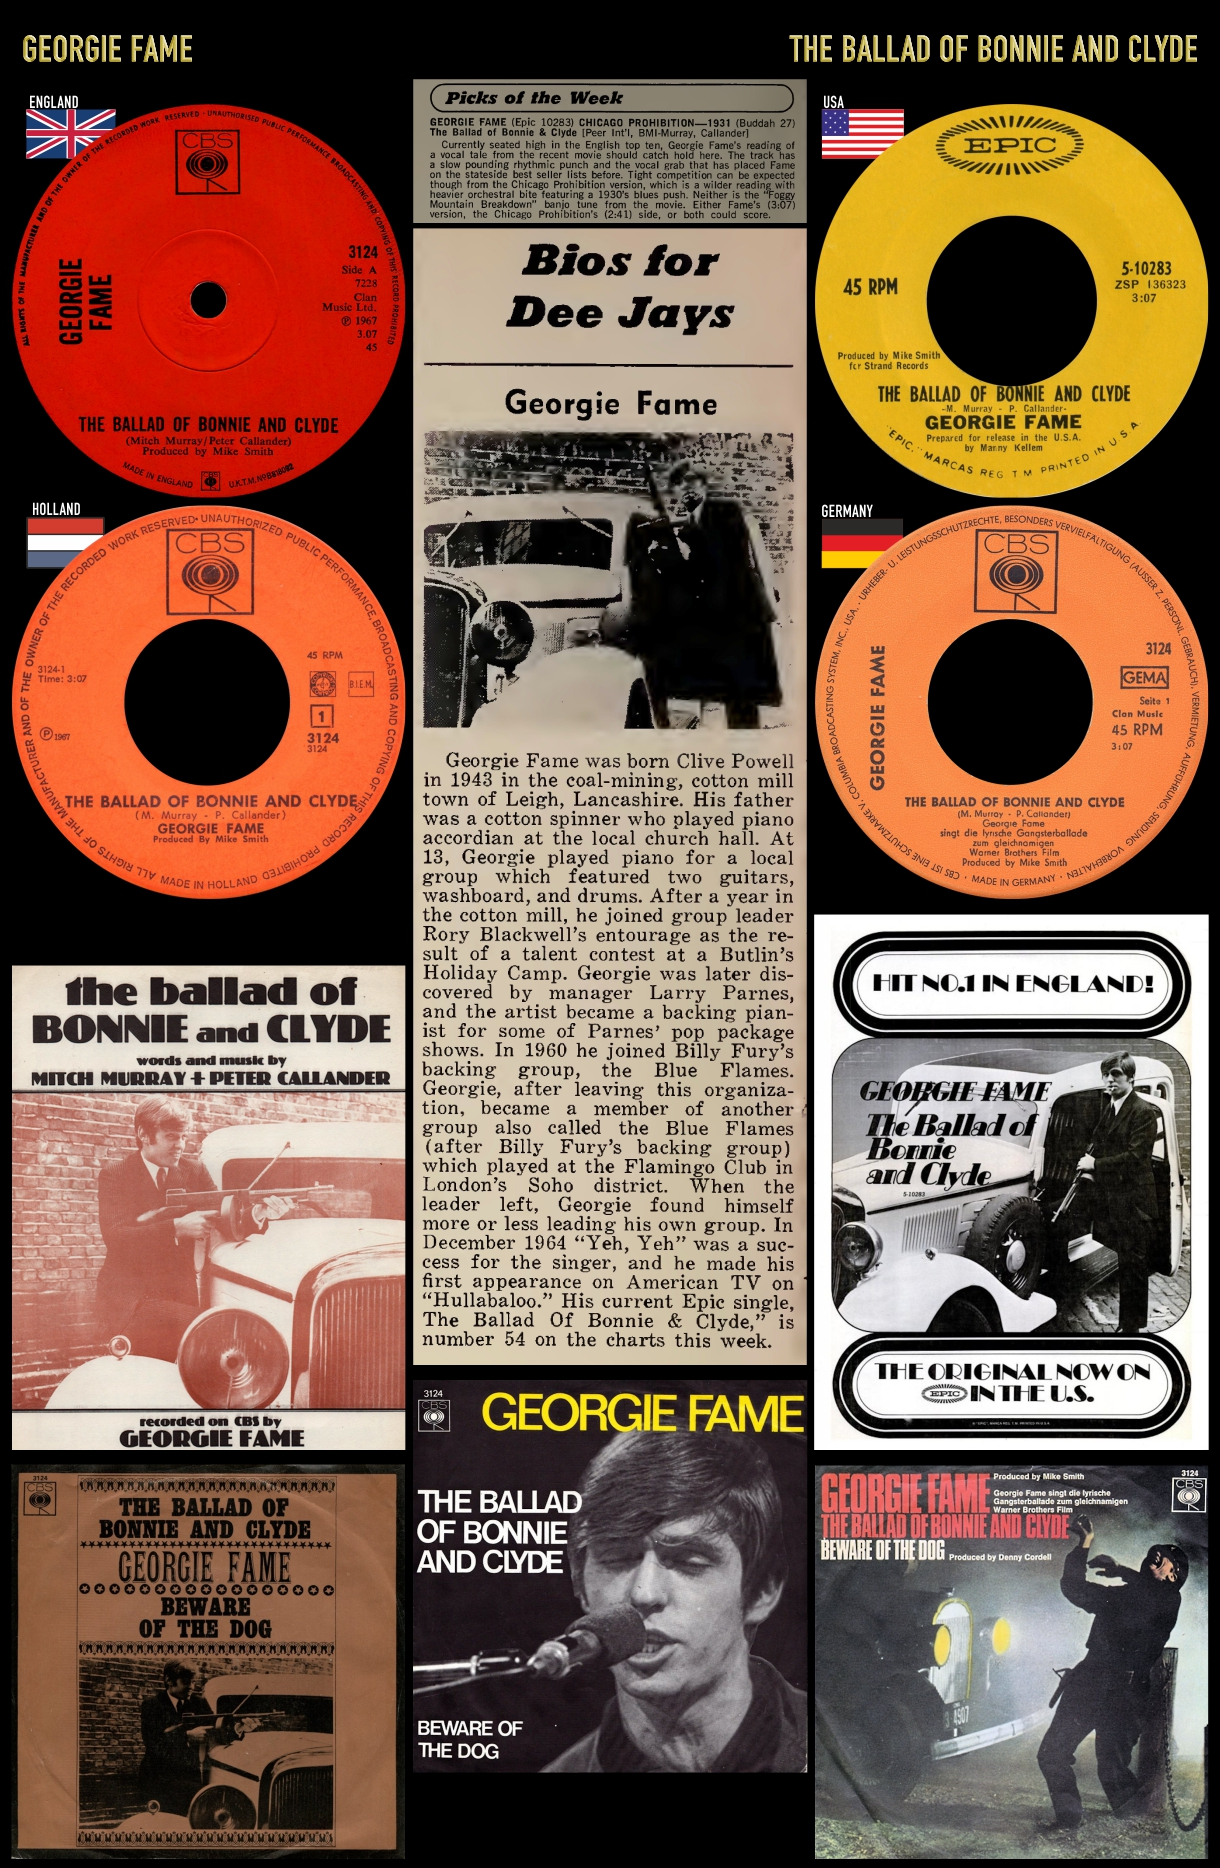 680302_Georgie Fame_The Ballad Of Bonnie And Clyde